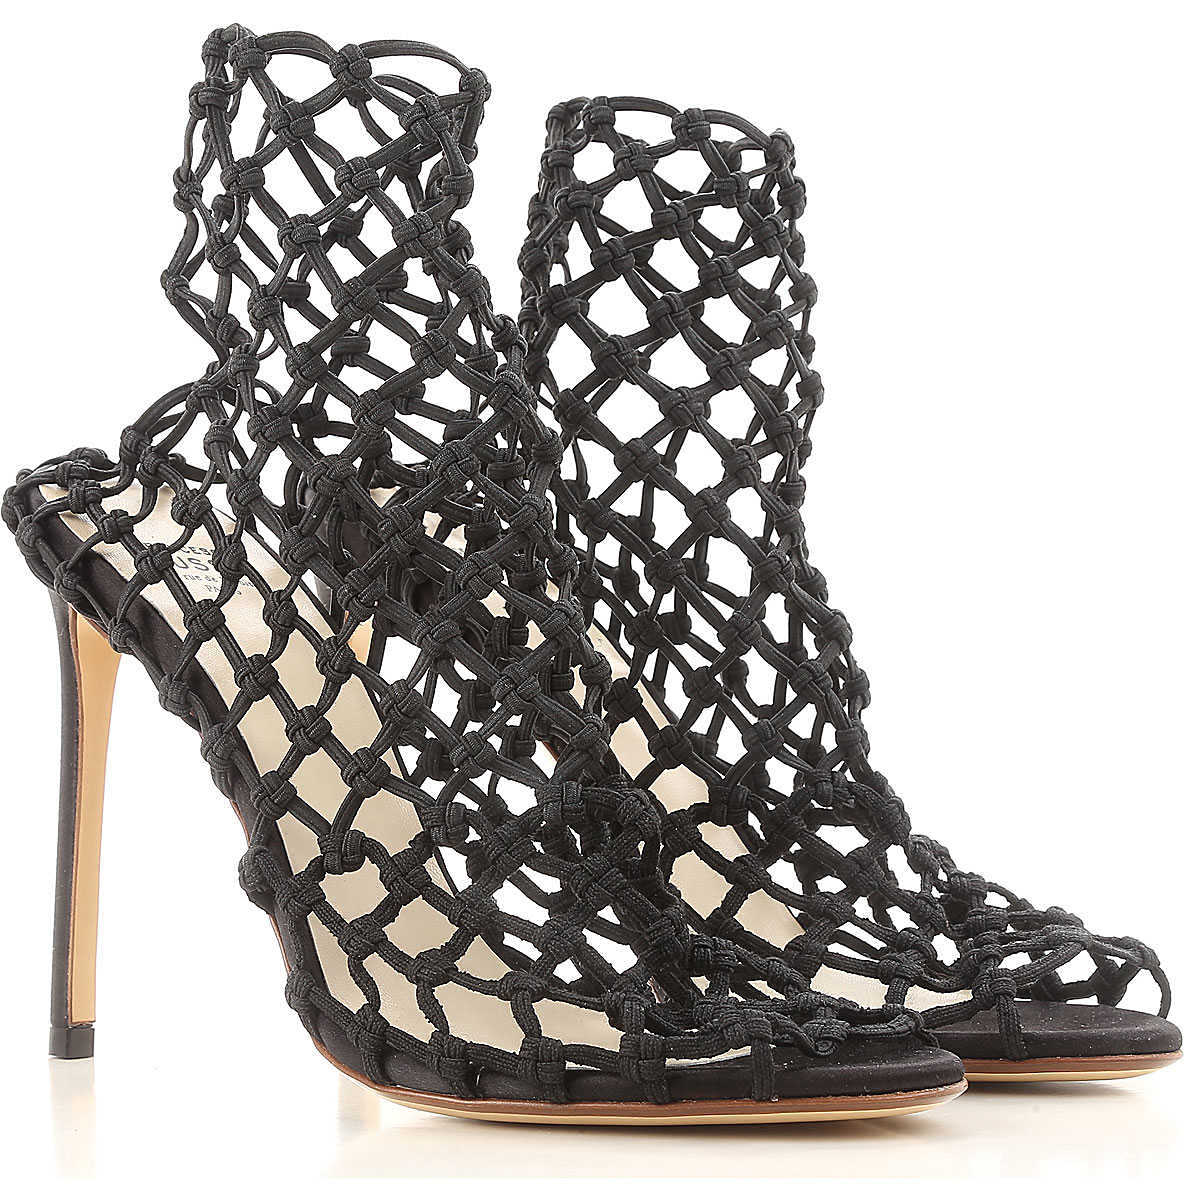 Francesco Russo Boots for Women 4.5 6.5 Booties On Sale in Outlet UK - GOOFASH